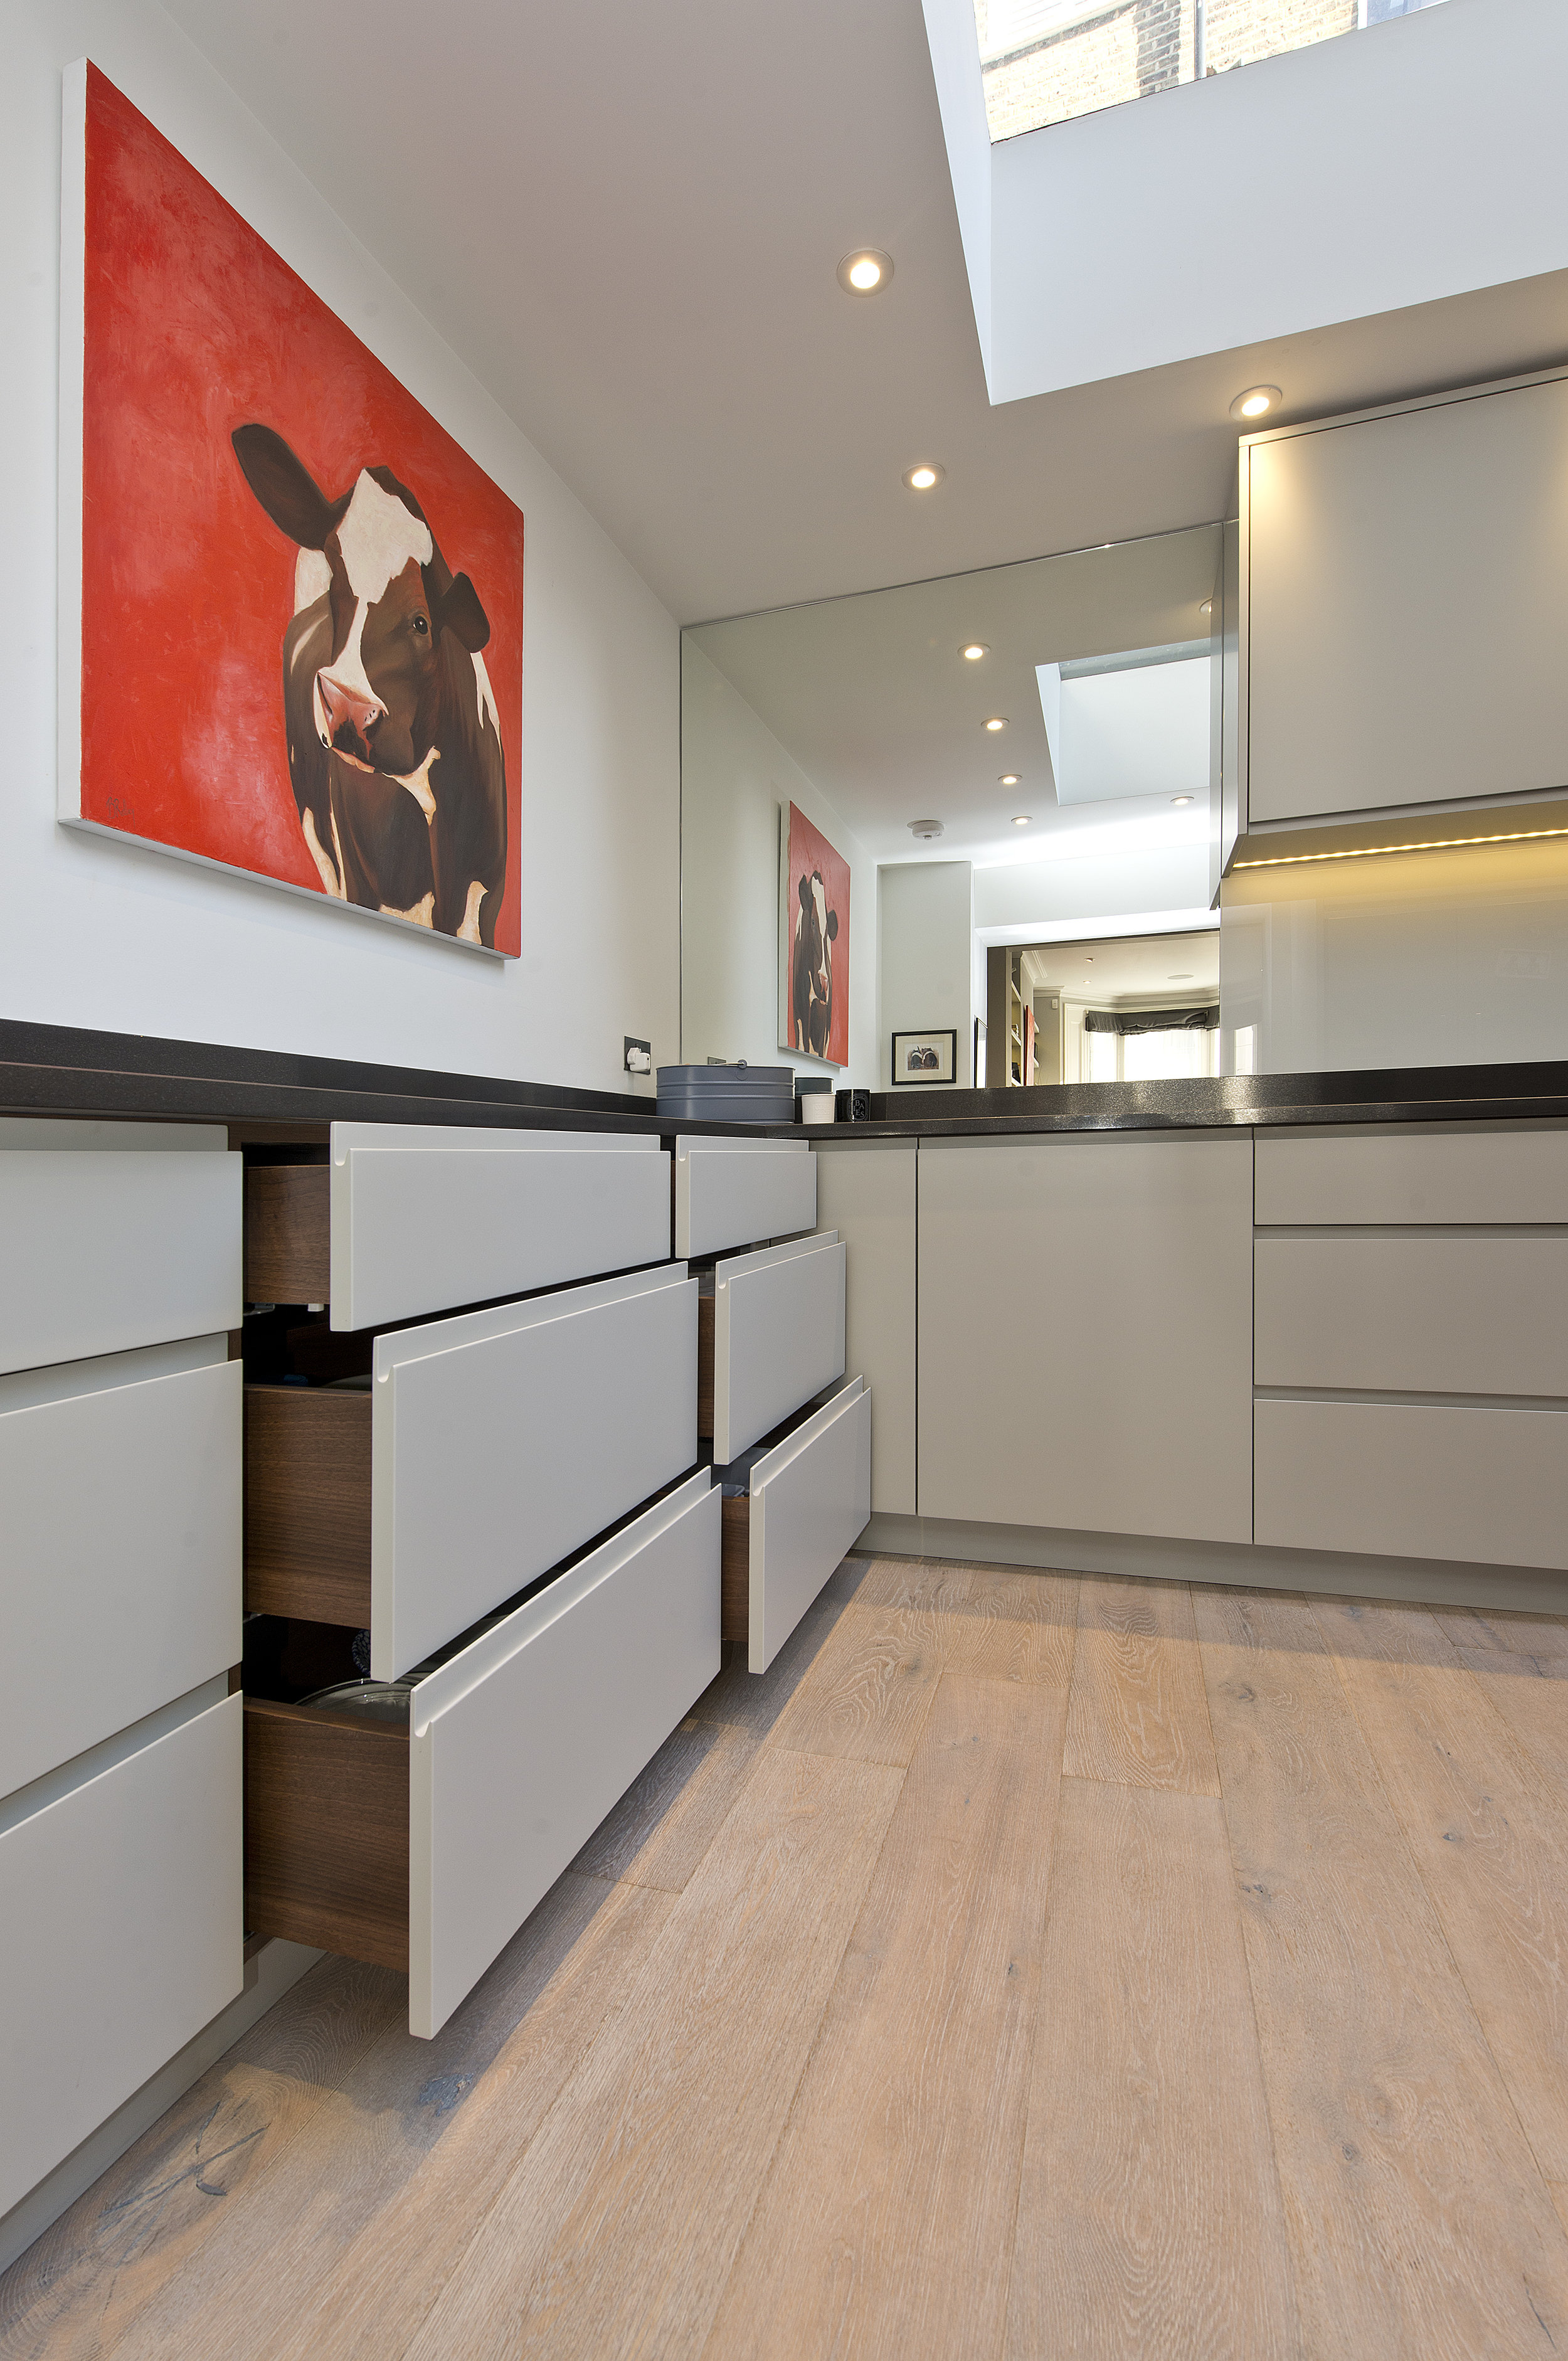 Bespoke design and build Kitchen, The Kitchen and Loft Company.